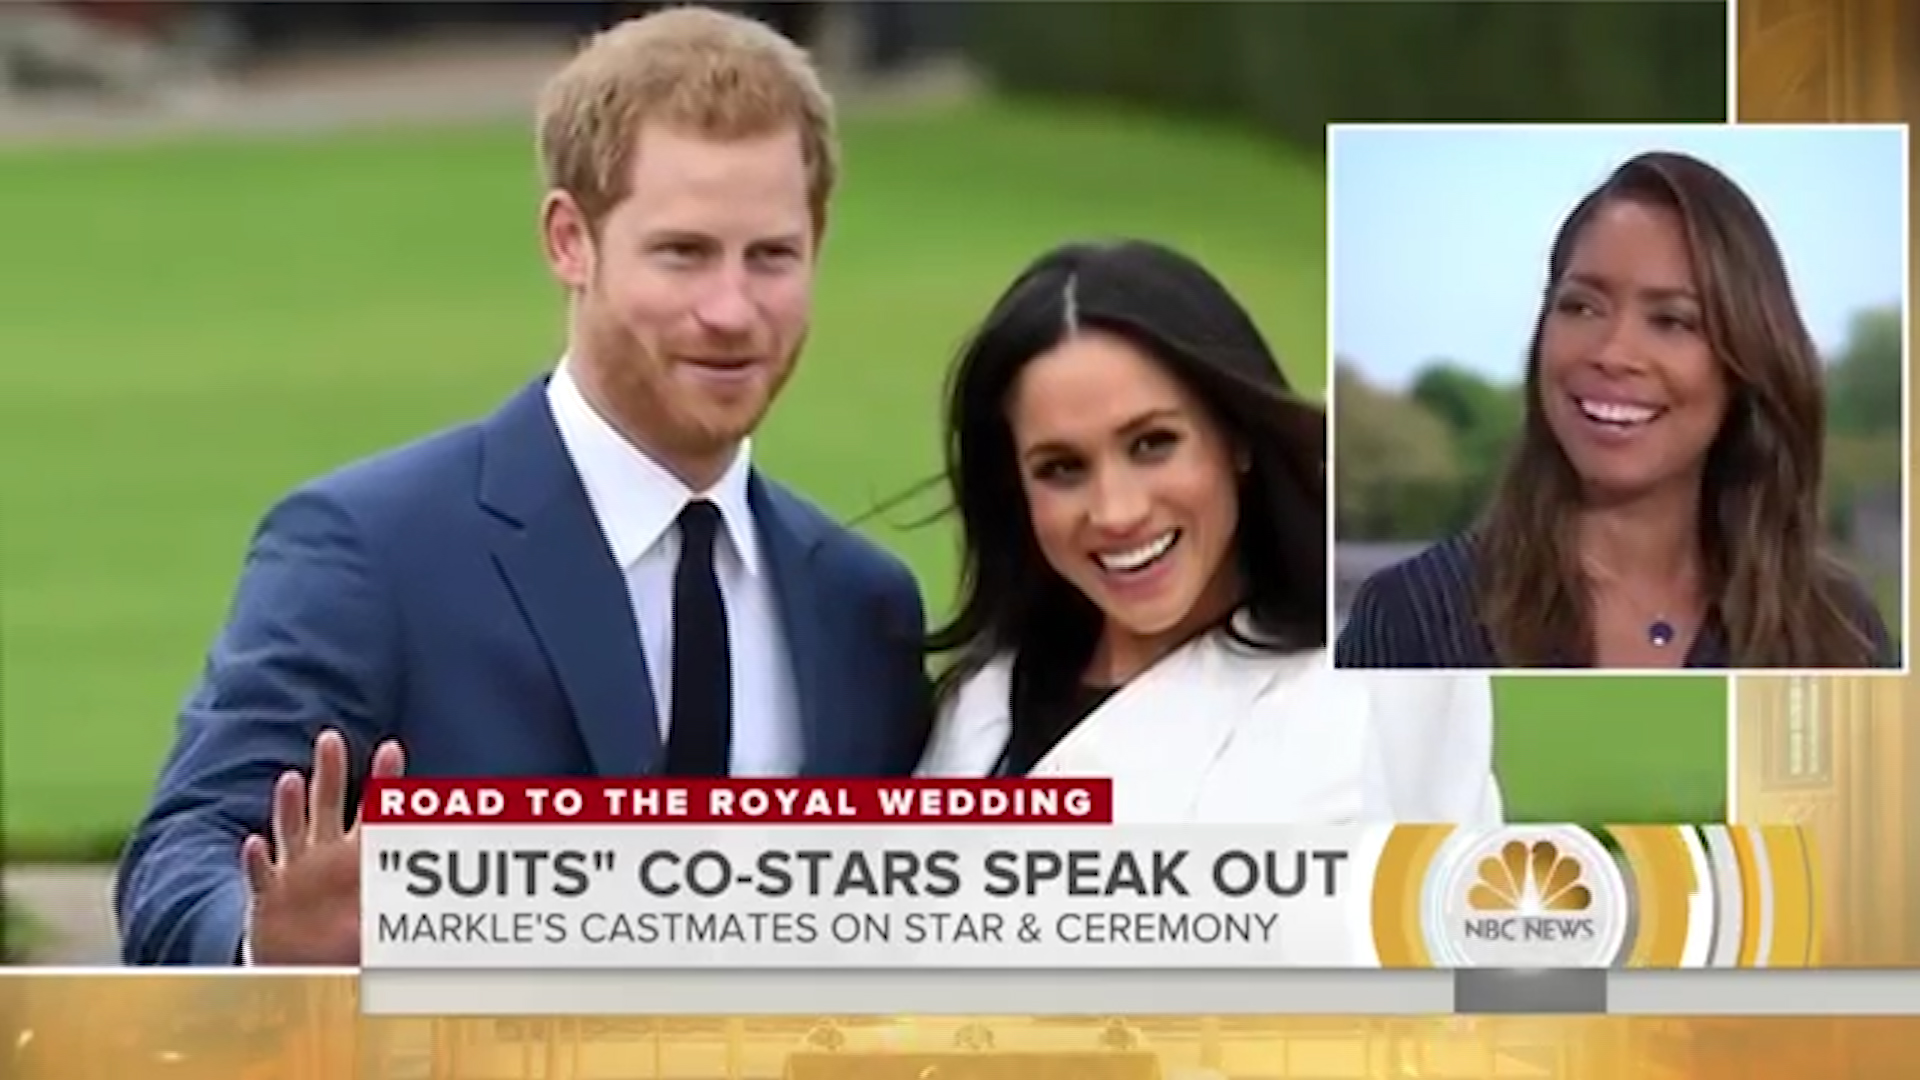 Meghan Markle's 'Suits' co-stars weigh in on Prince Harry